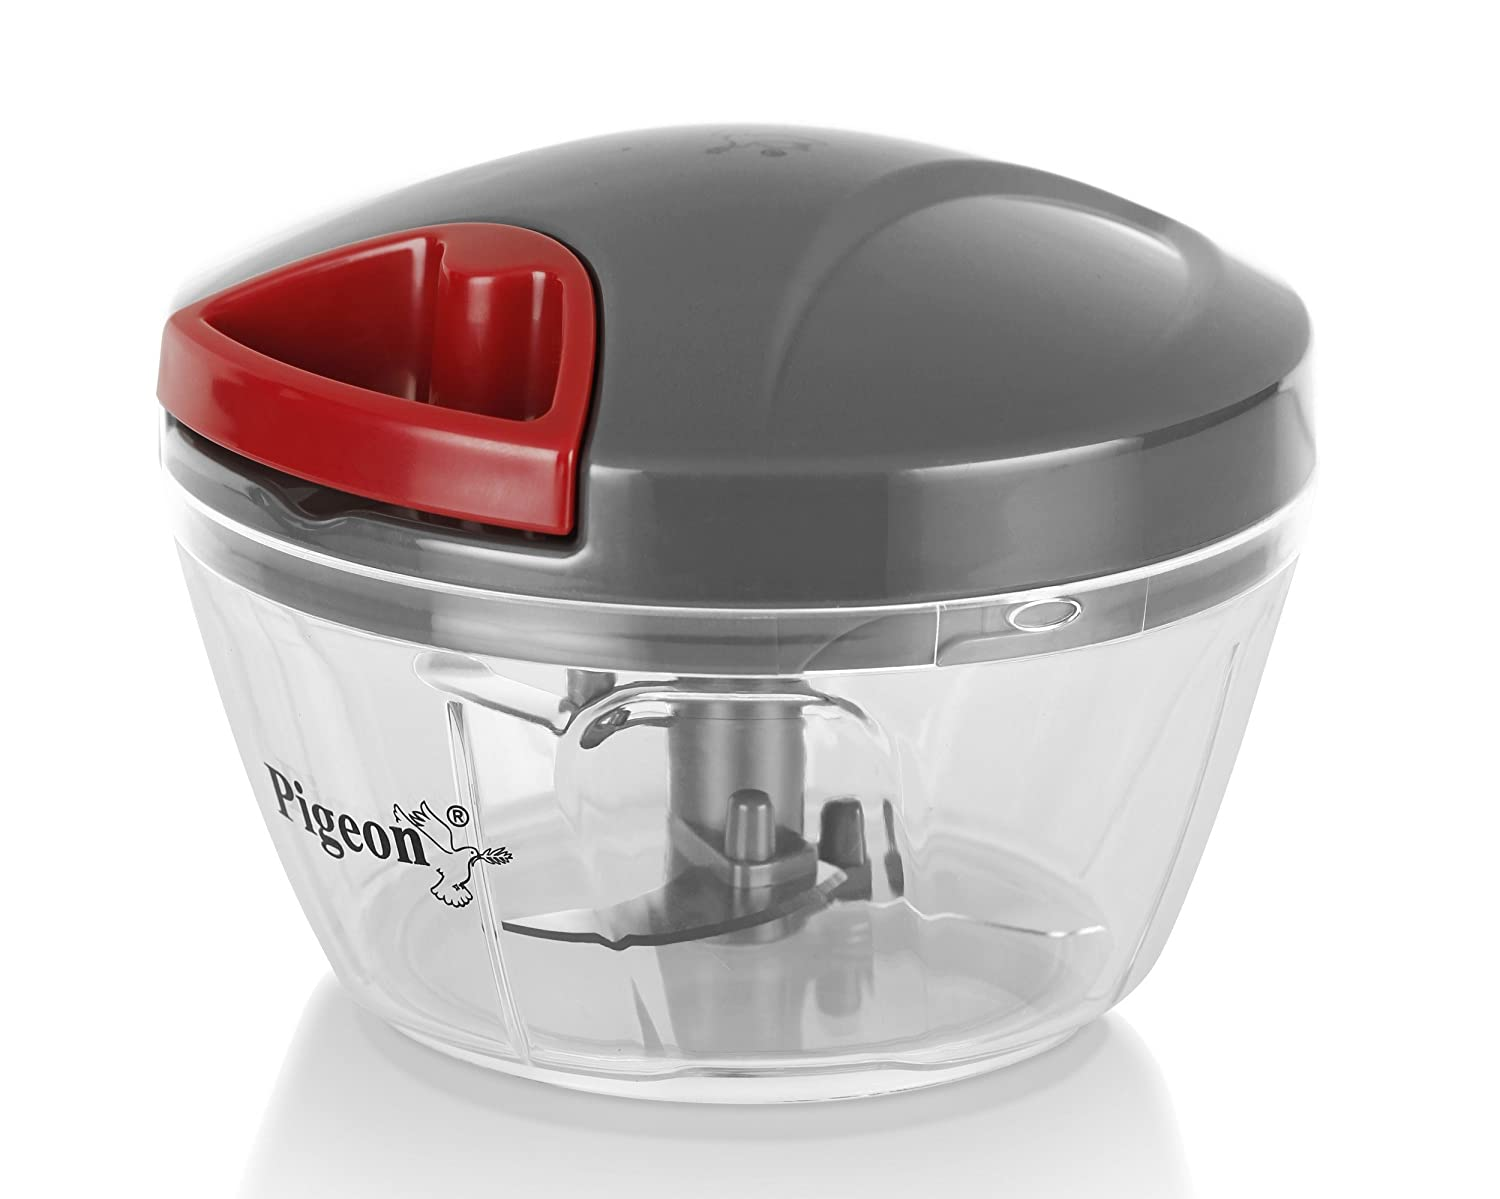 Pigeon Handy Mini Plastic Chopper with 3 Blades, Grey